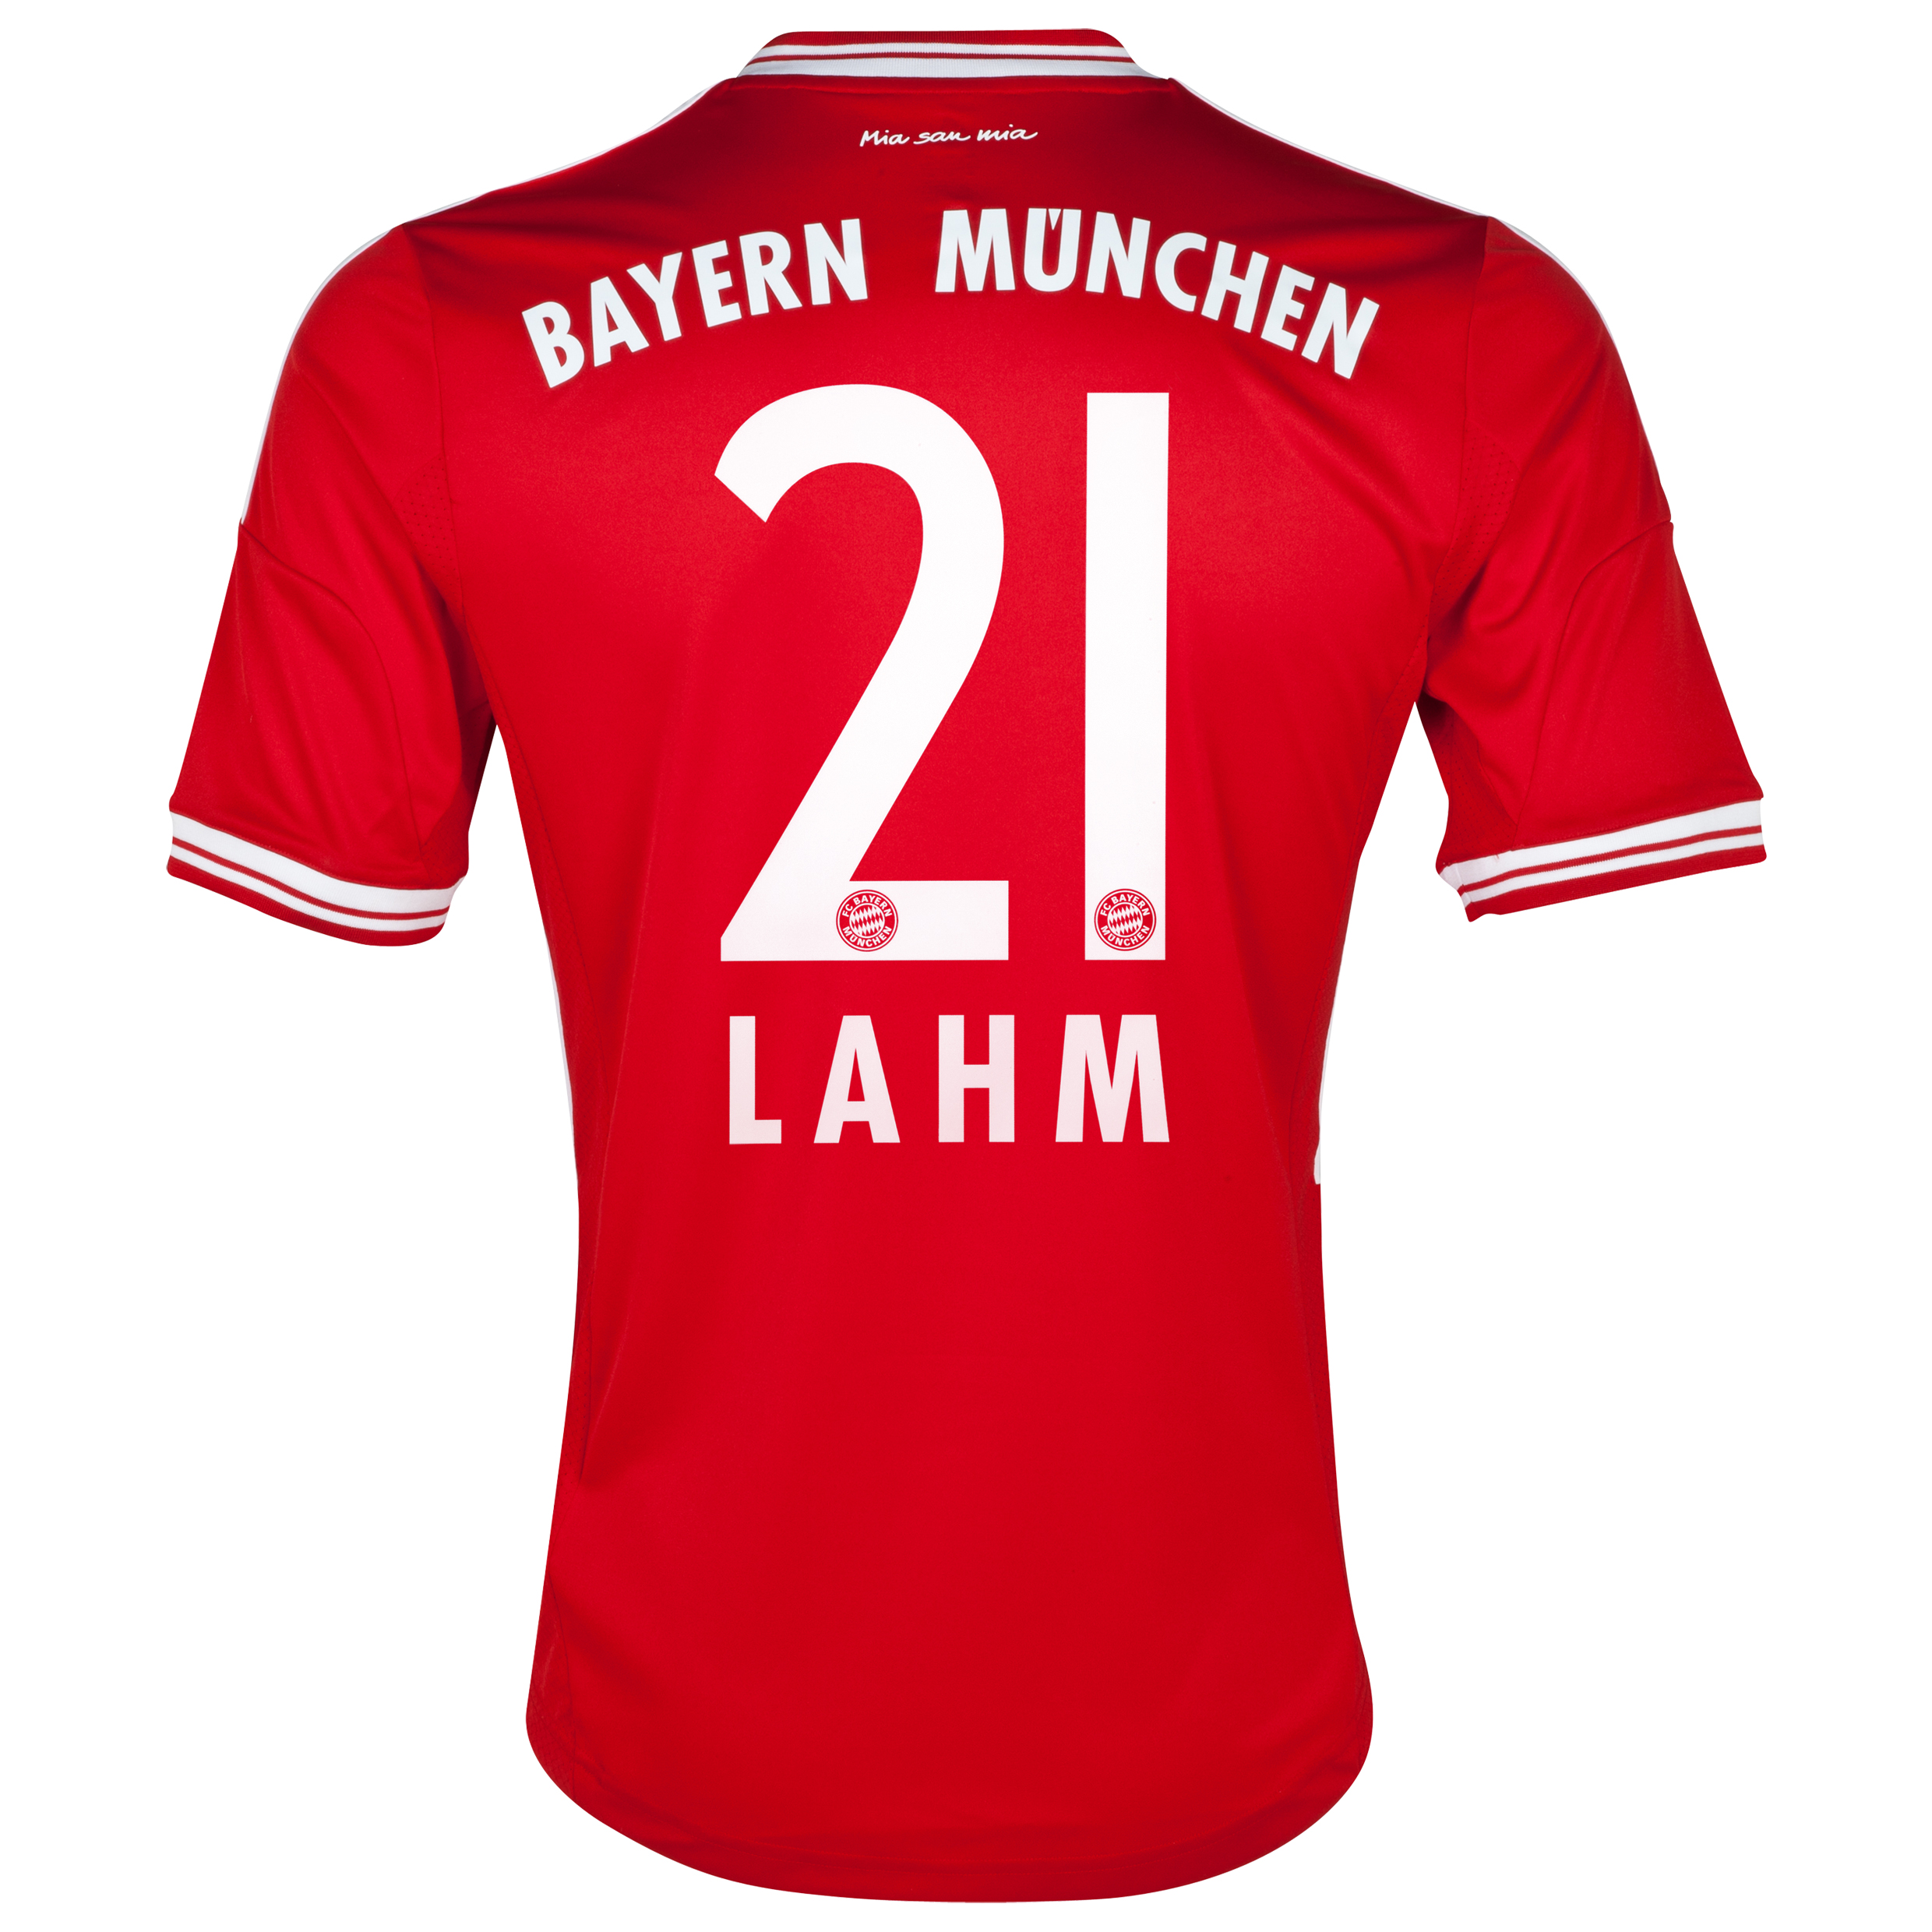 Bayern Munich Home Shirt 2013/14 with Lahm 21 printing